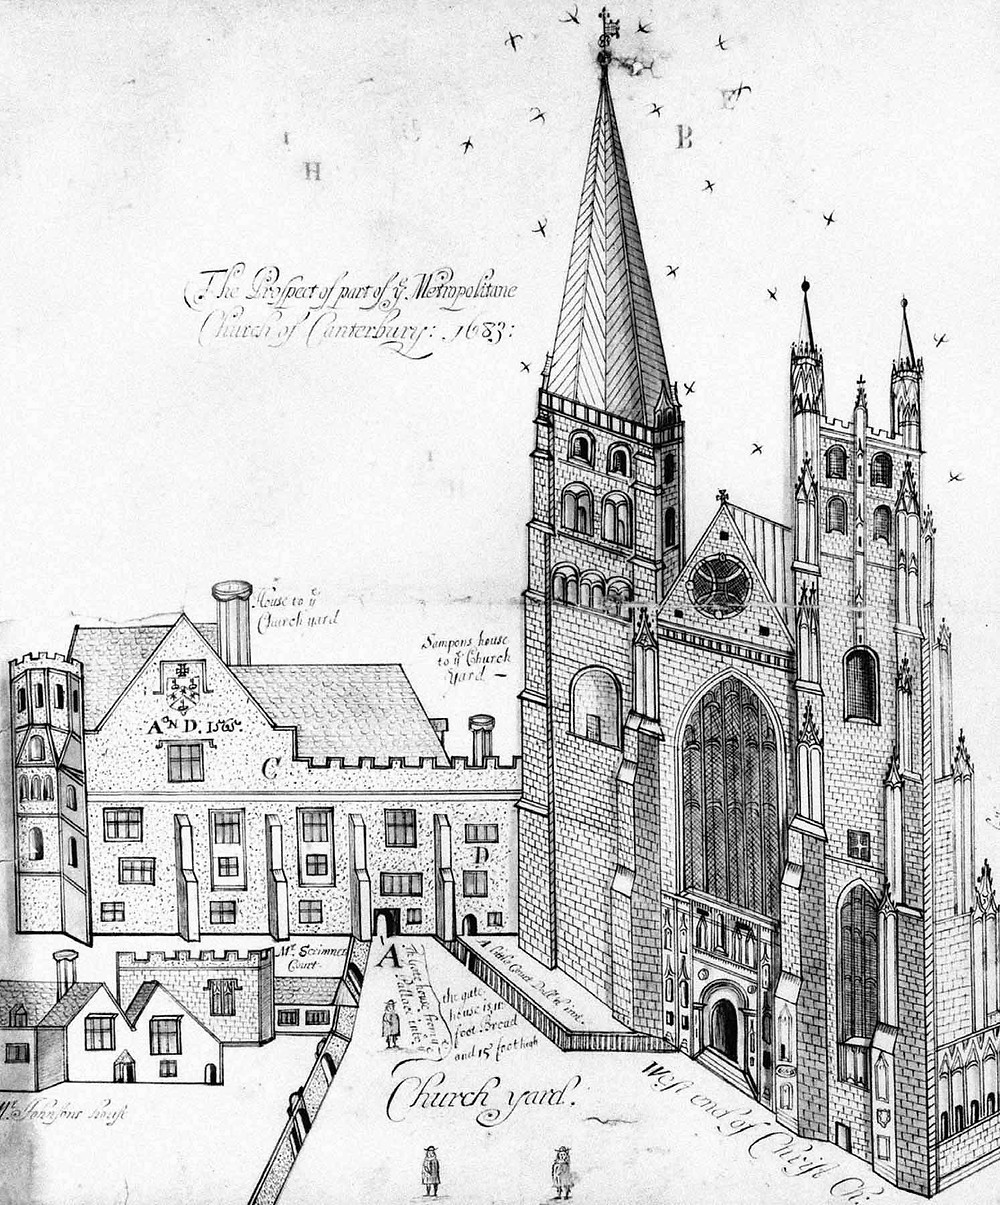 Archbishop's Palace in 1683 (Tanner MSS cxxiii, 22–24)